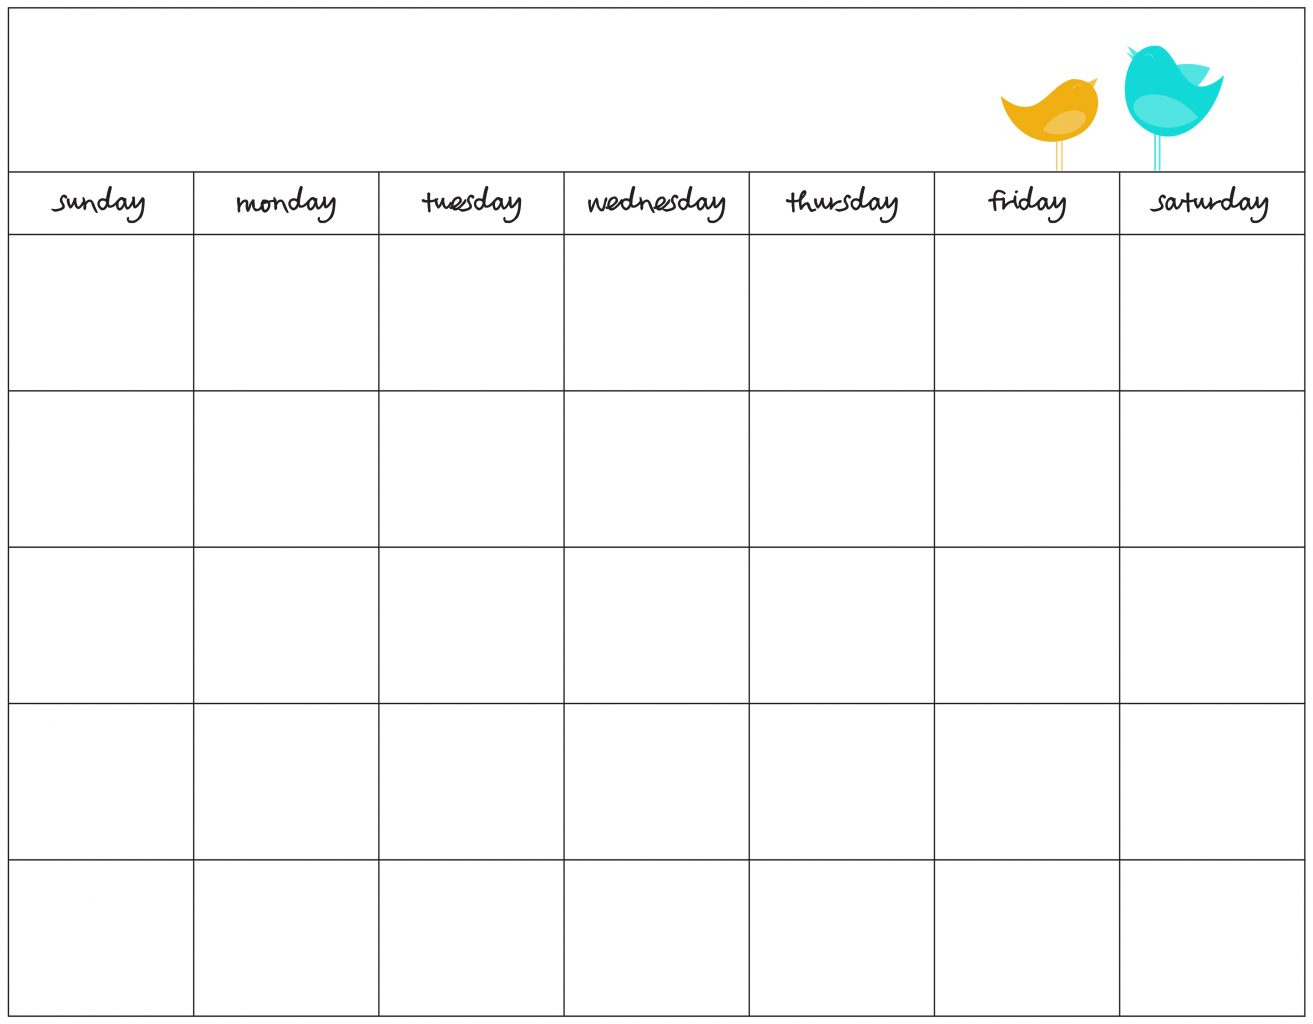 Blank Work Schedules Schedule R Template Selomdigitalsiteco Weekly - Free Printable Work Schedule Maker